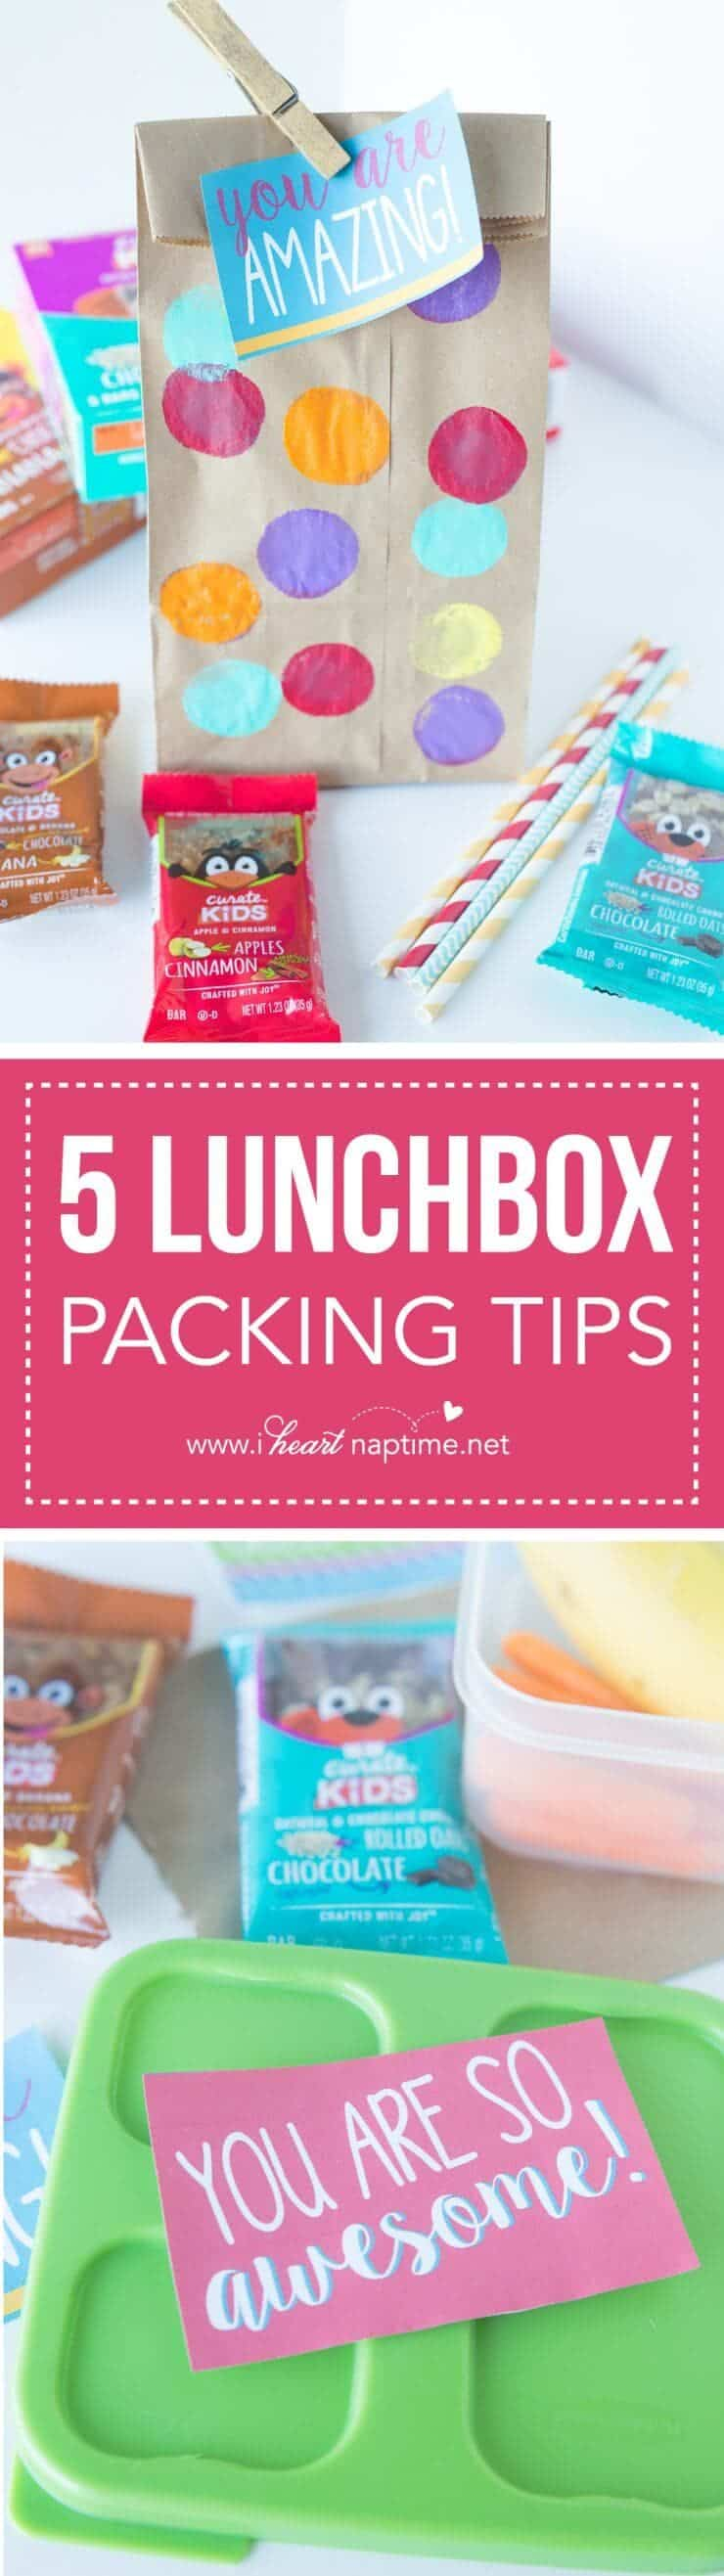 5 Lunchbox Packing Tips